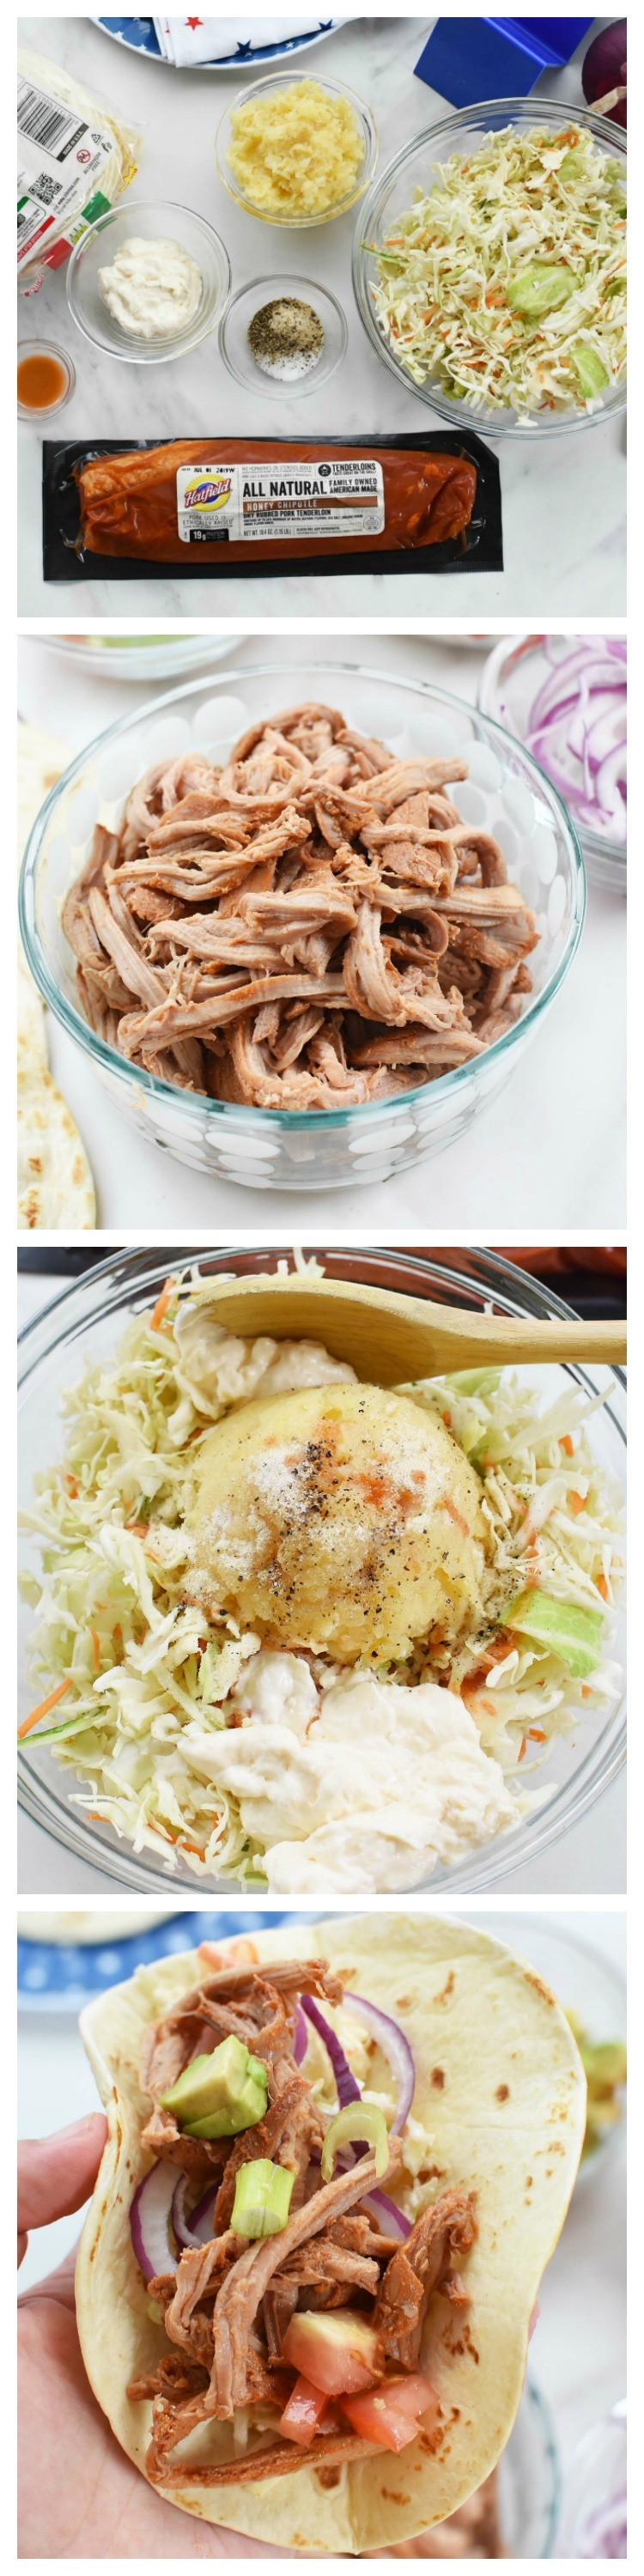 Pineapple Coleslaw Pork Street Tacos (with Hatfield® Pork)